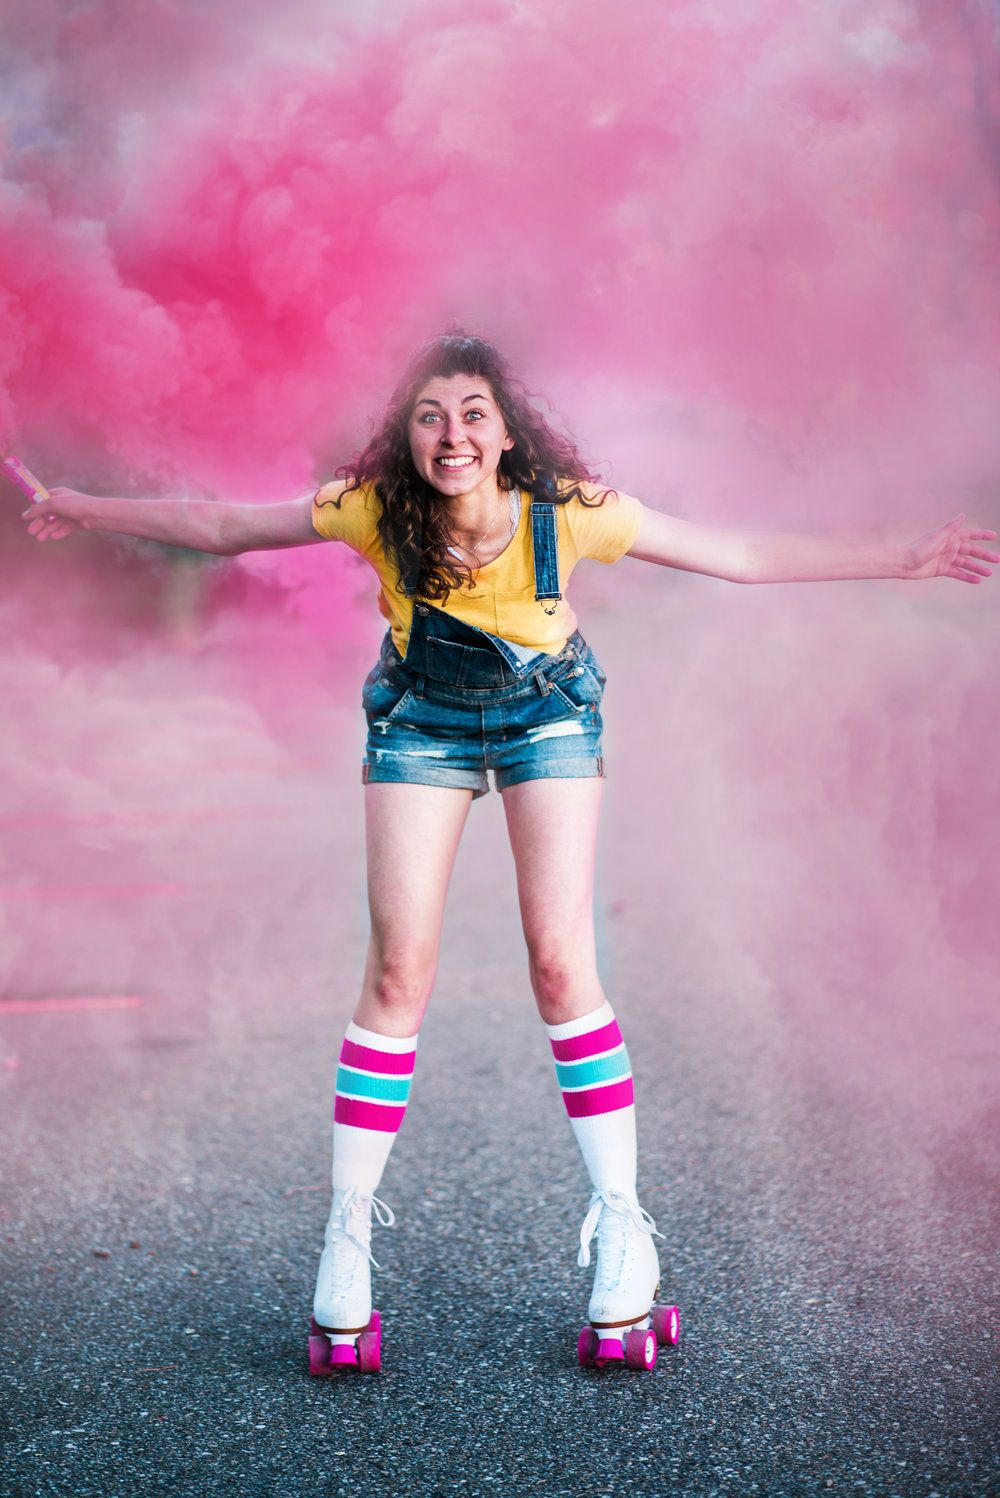 f0e6d89c369 Retro // 80's // Beatles // Target Style // Vintage Styled Shoot // burgers  // retro outfit // smoke bomb photography // rollerskate photography //  arcade ...